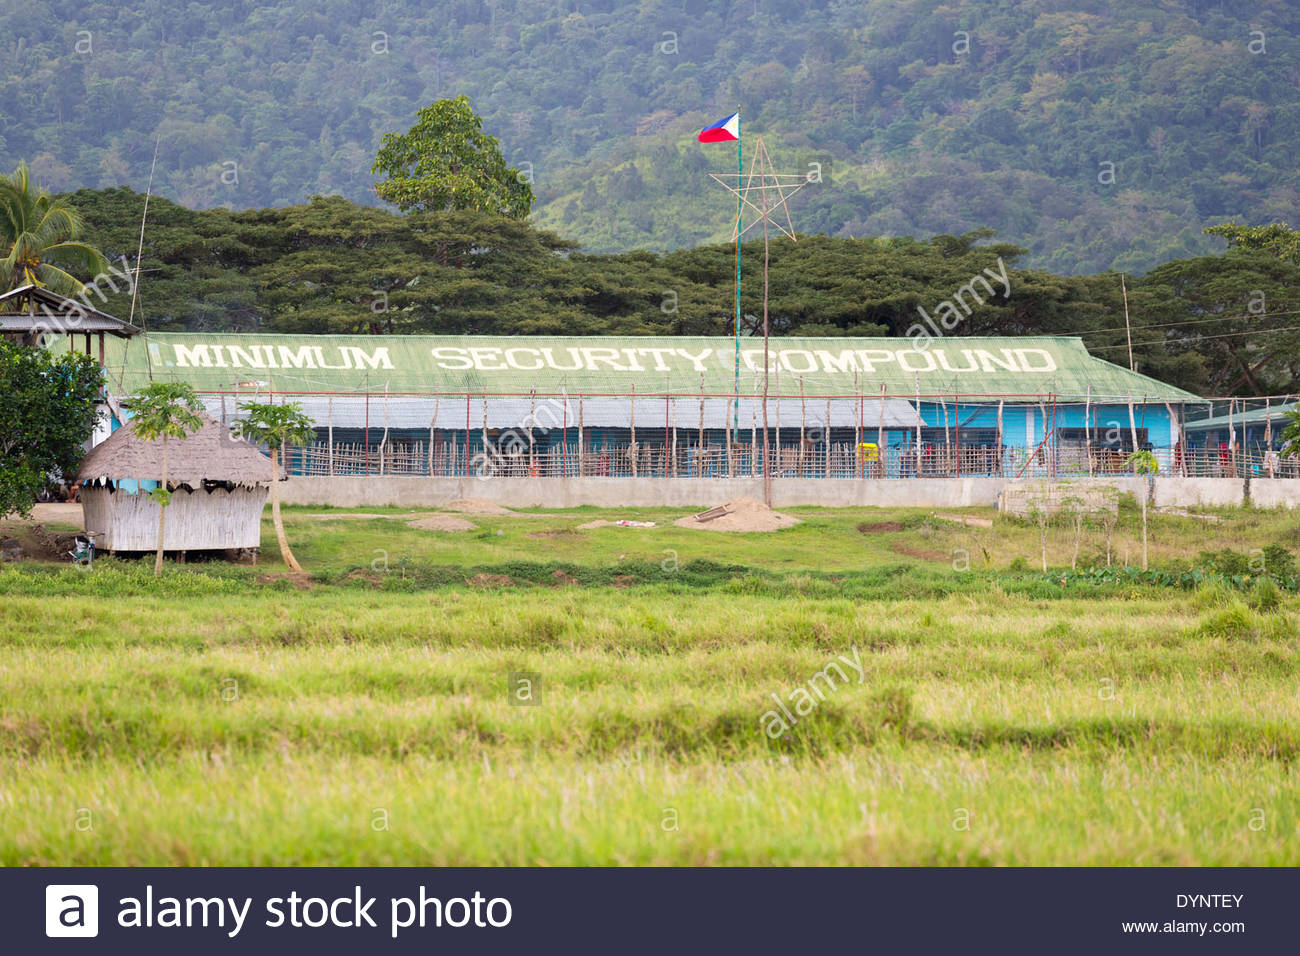 Iwahig Prison & Penal Farm Puerto Princesa, The Minimum Security Compound of the Iwahig Prison and Penal Farm ...